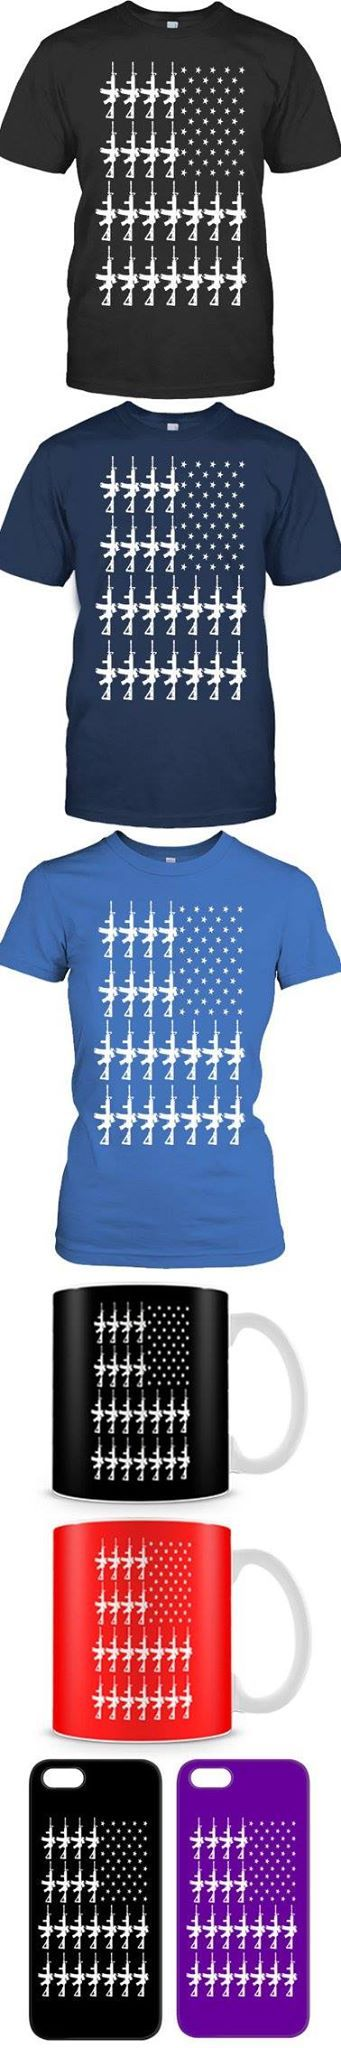 Do You Love Ar15?Then Click The Image To Buy It Now or Tag Someone You Want To Buy This For.